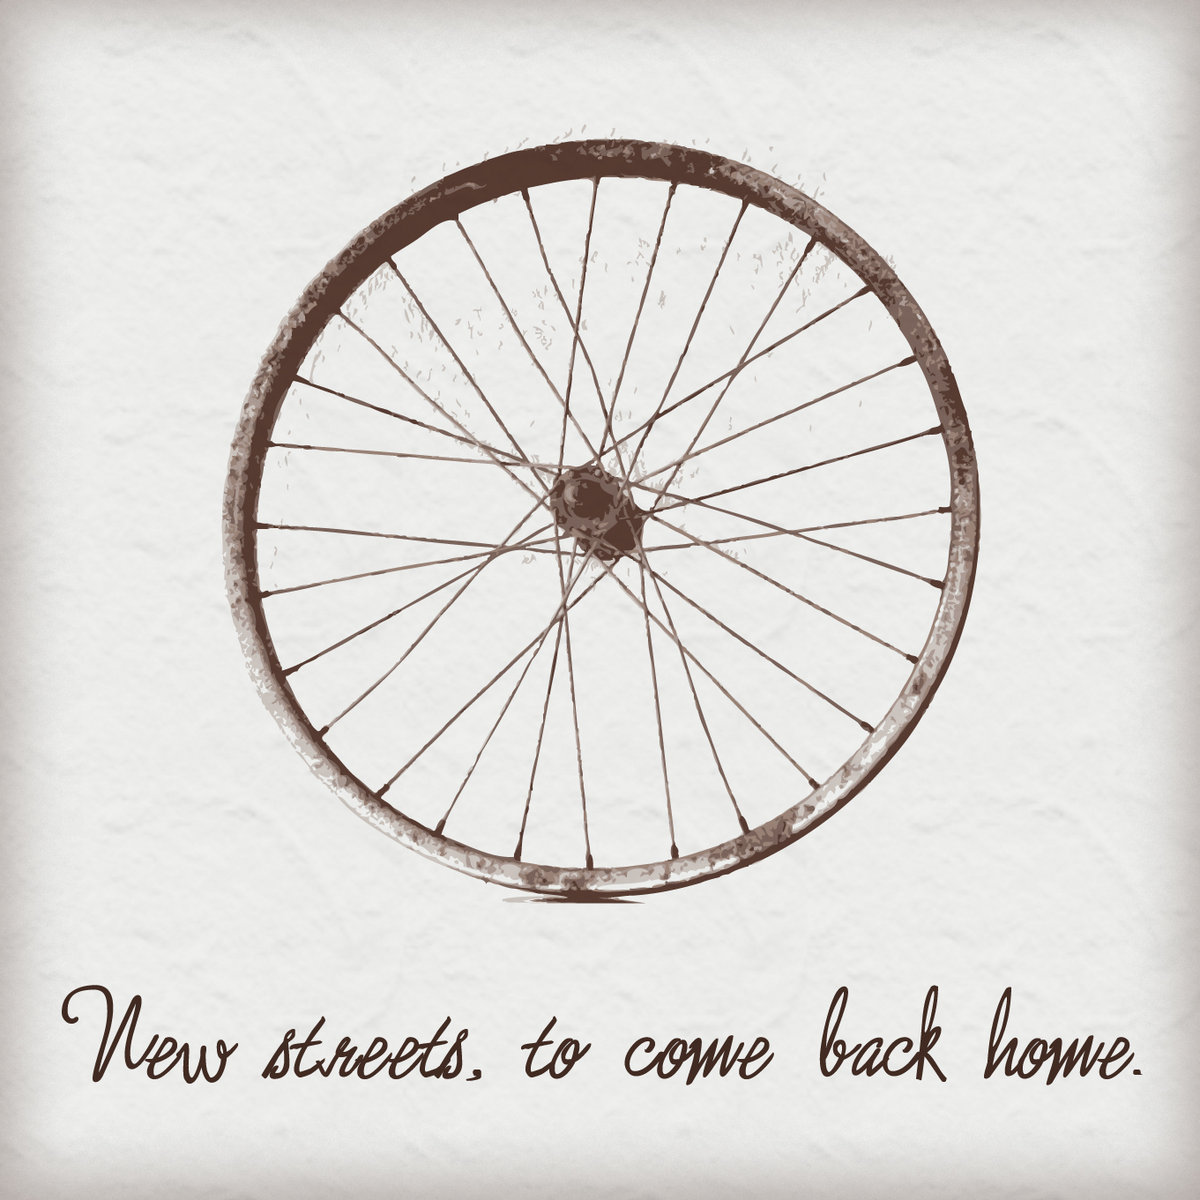 new streets to come back home my sleepless youth